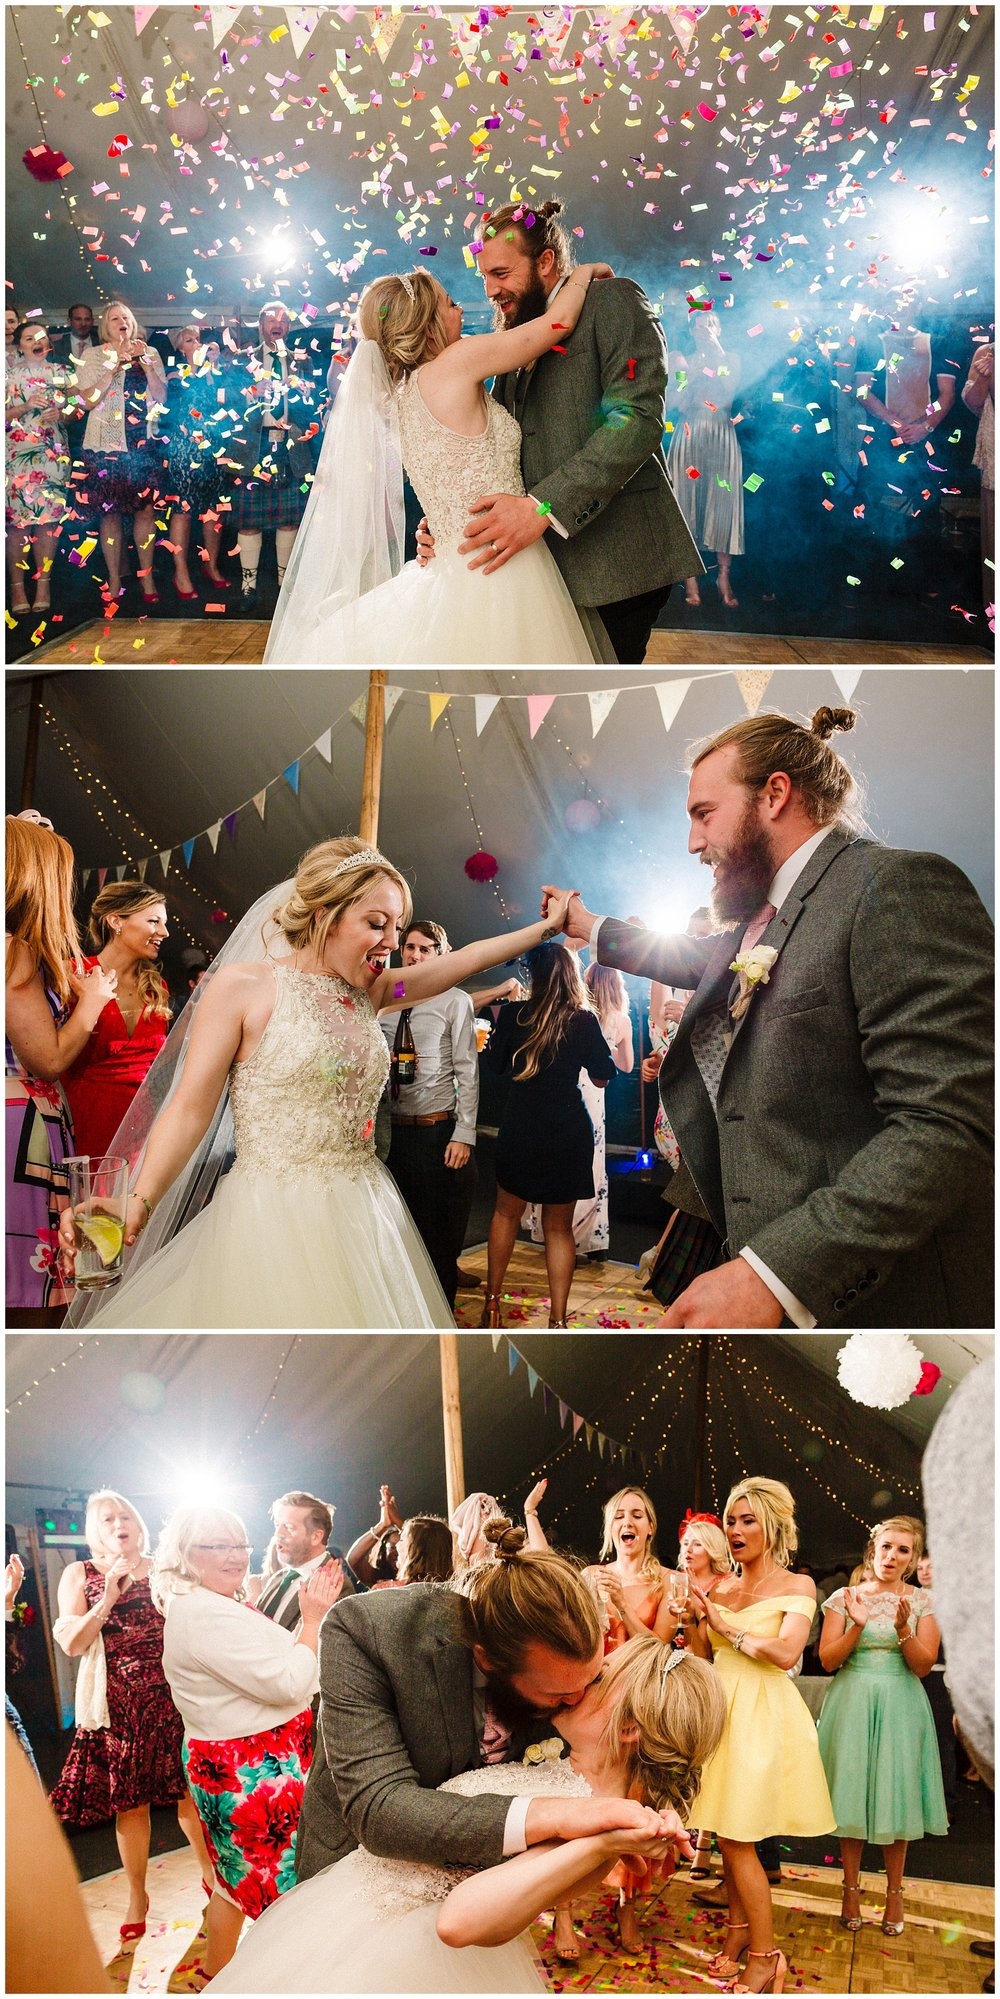 a bride and groom doing their first dance surrounded by colourful confetti